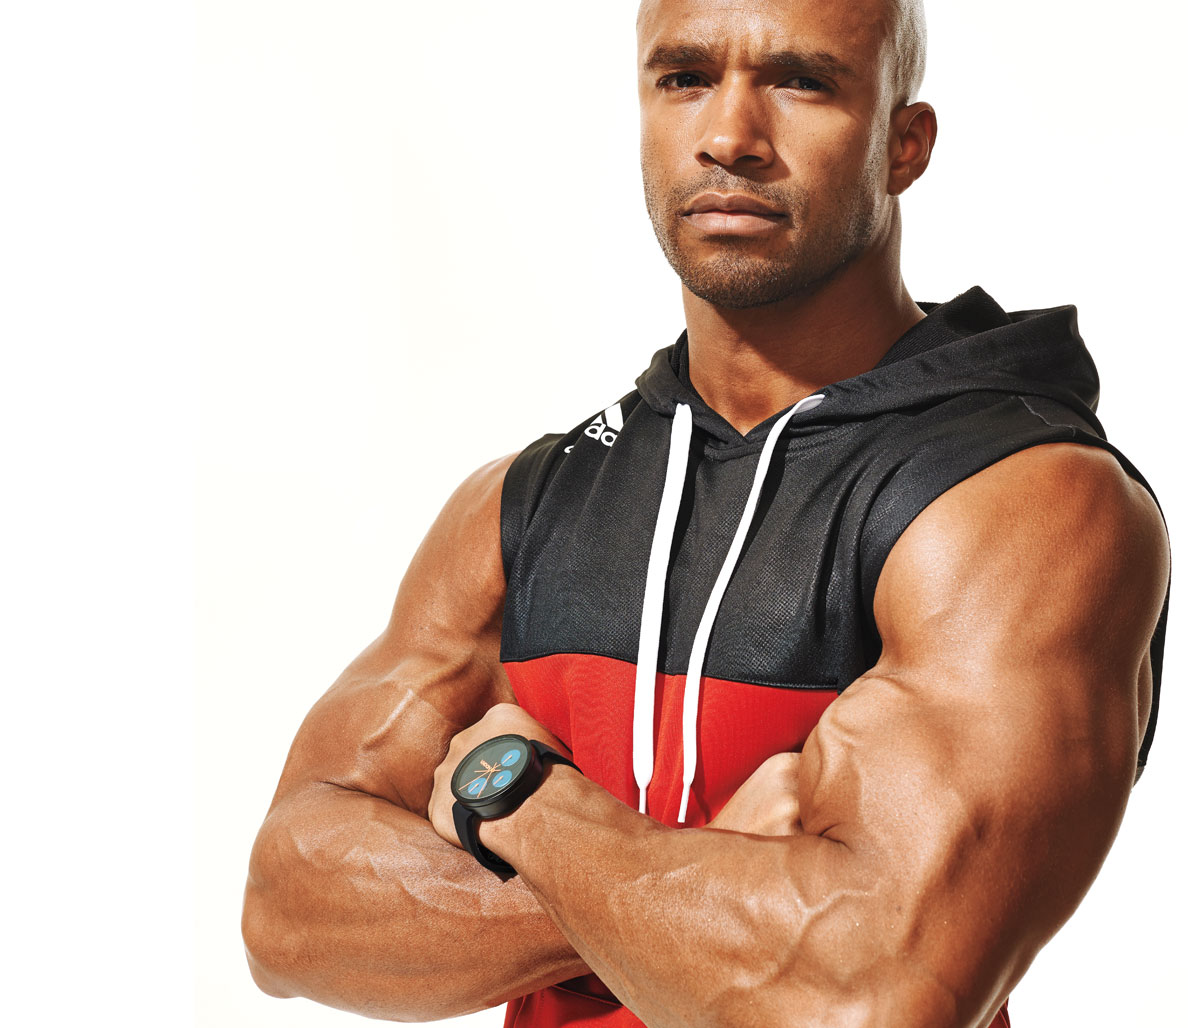 Take on the Hollywood bis and tris workout